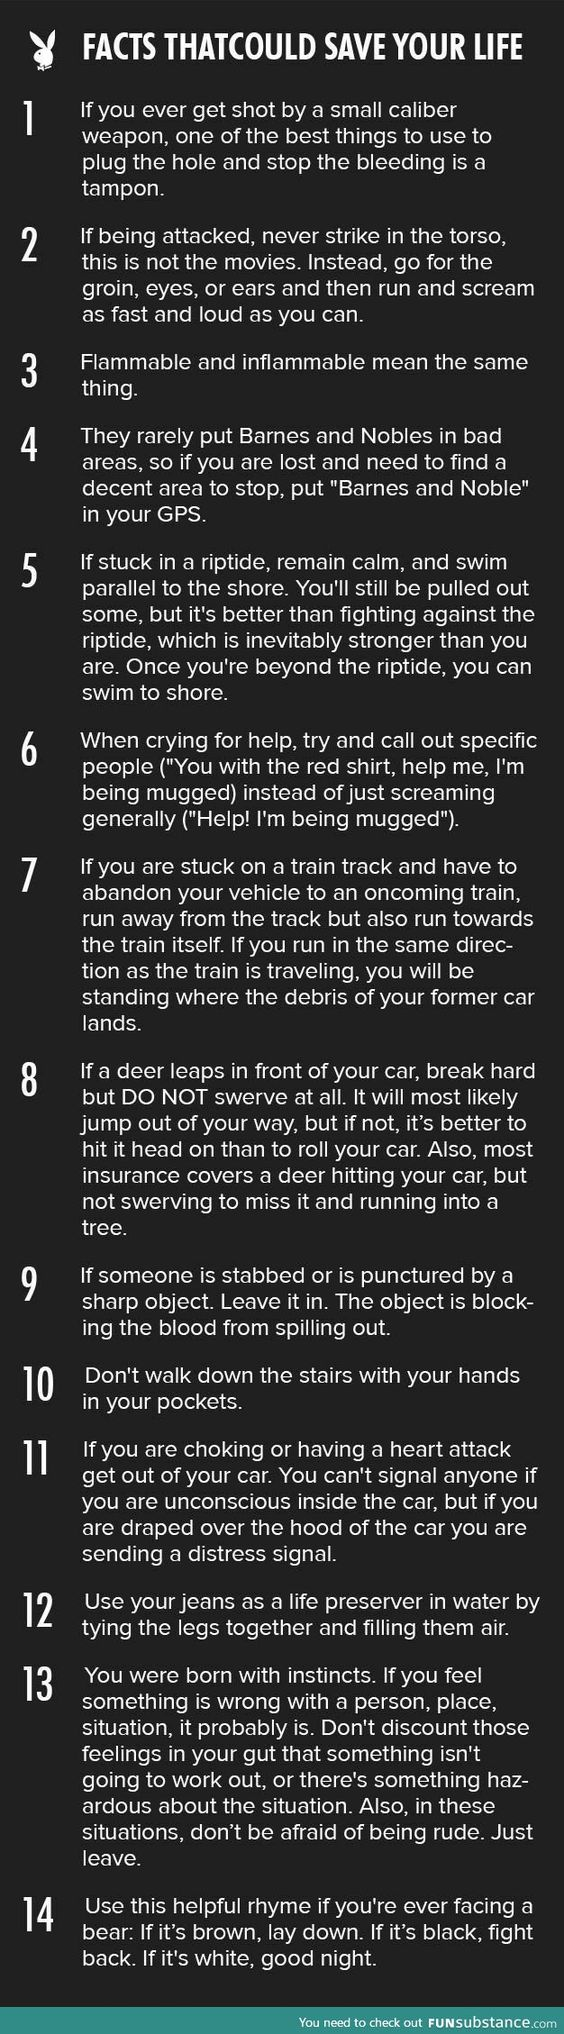 14 tips that could save your life - Not so sure about the Barnes and Noble tip, but the rest seem pretty solid. Quite the list of scenarios, they sure covered all the bases! #Safety #Tips